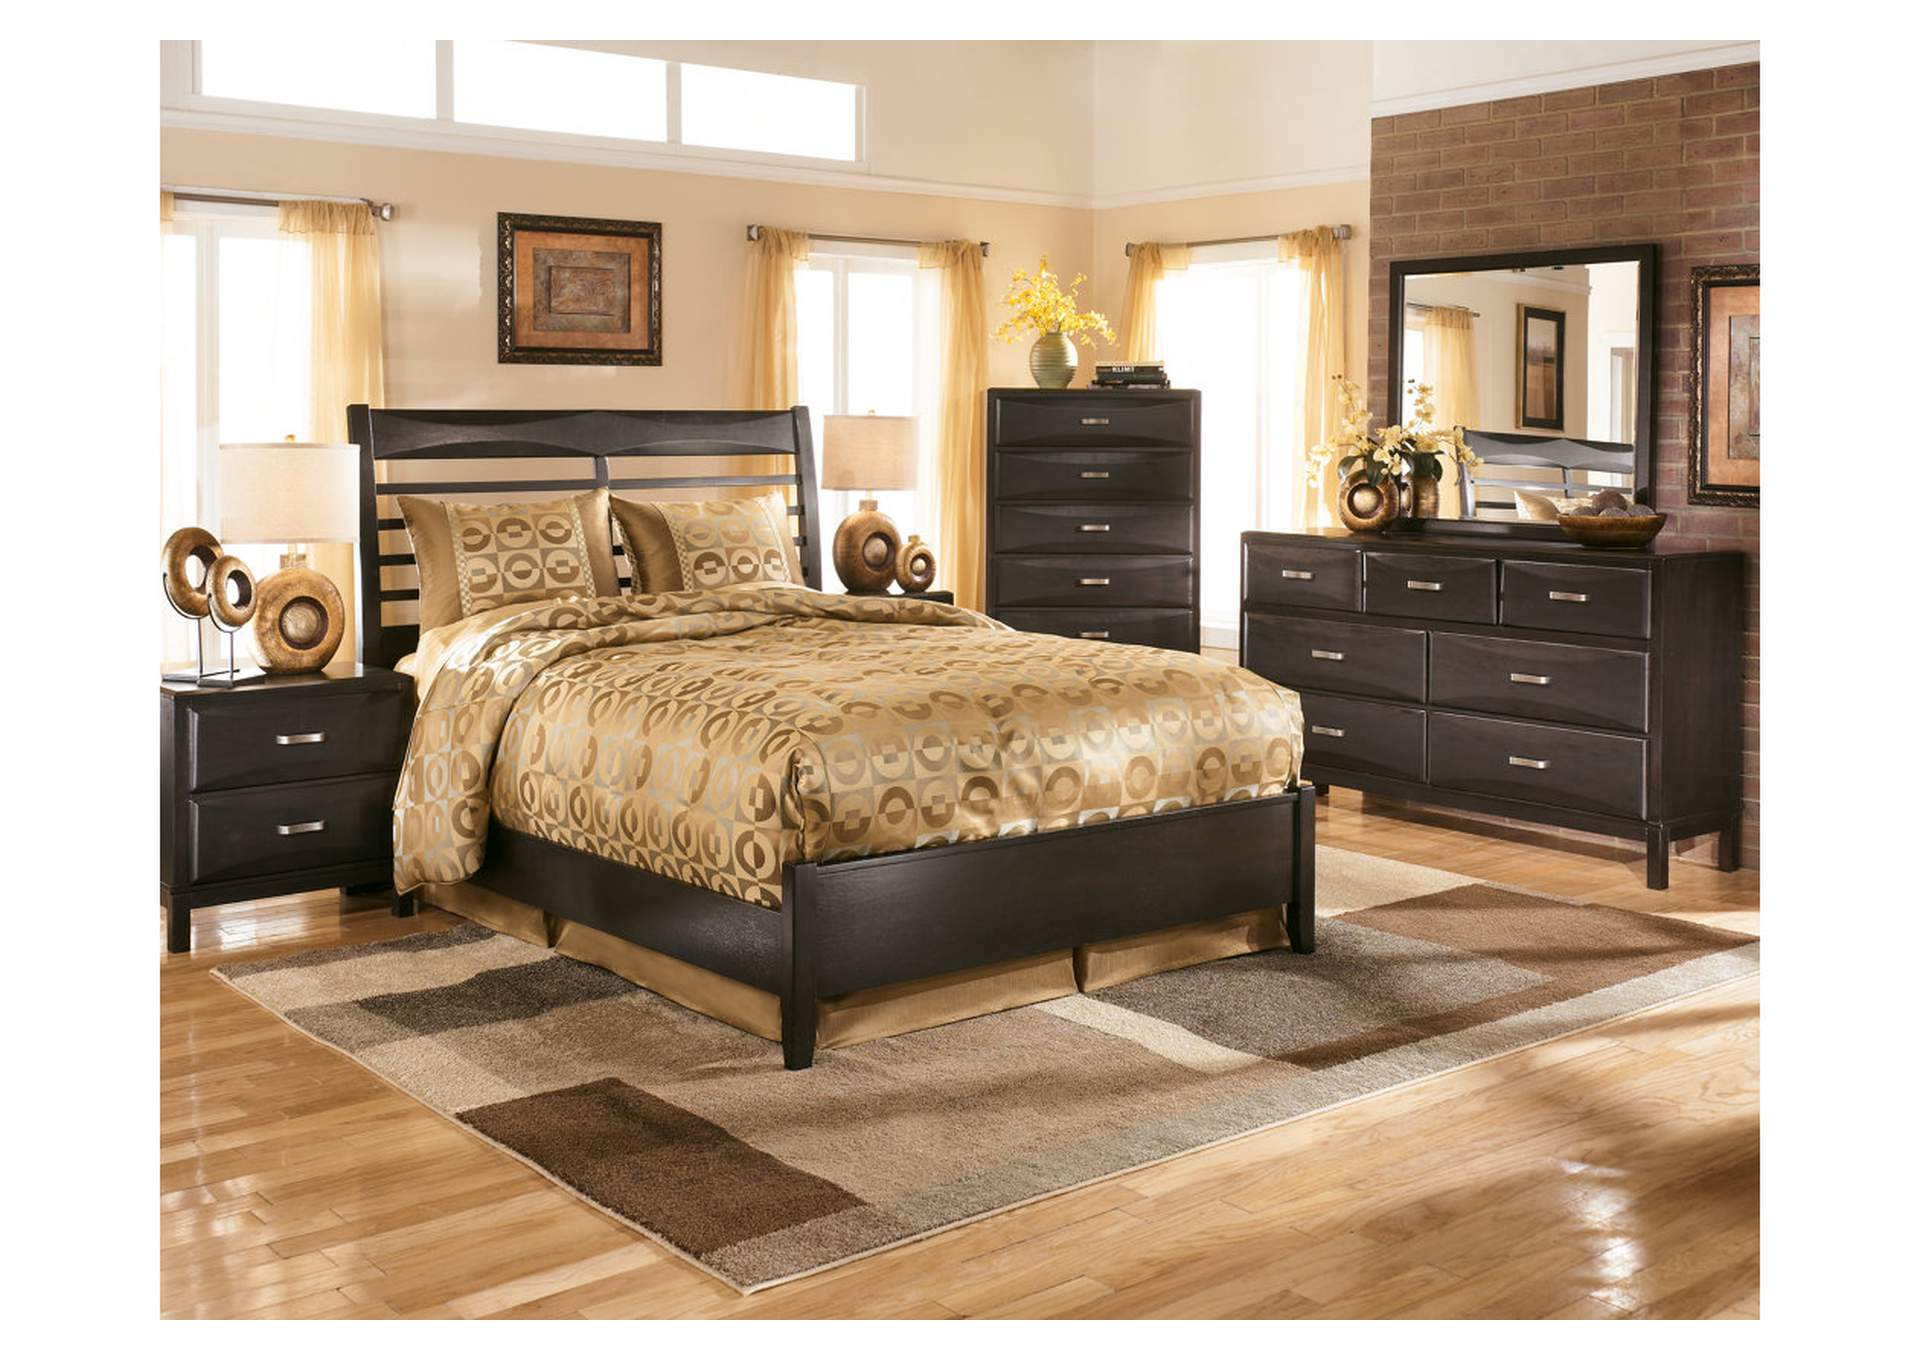 Kira Black Queen Panel Bed w/Dresser, Mirror & Nightstand,Ashley